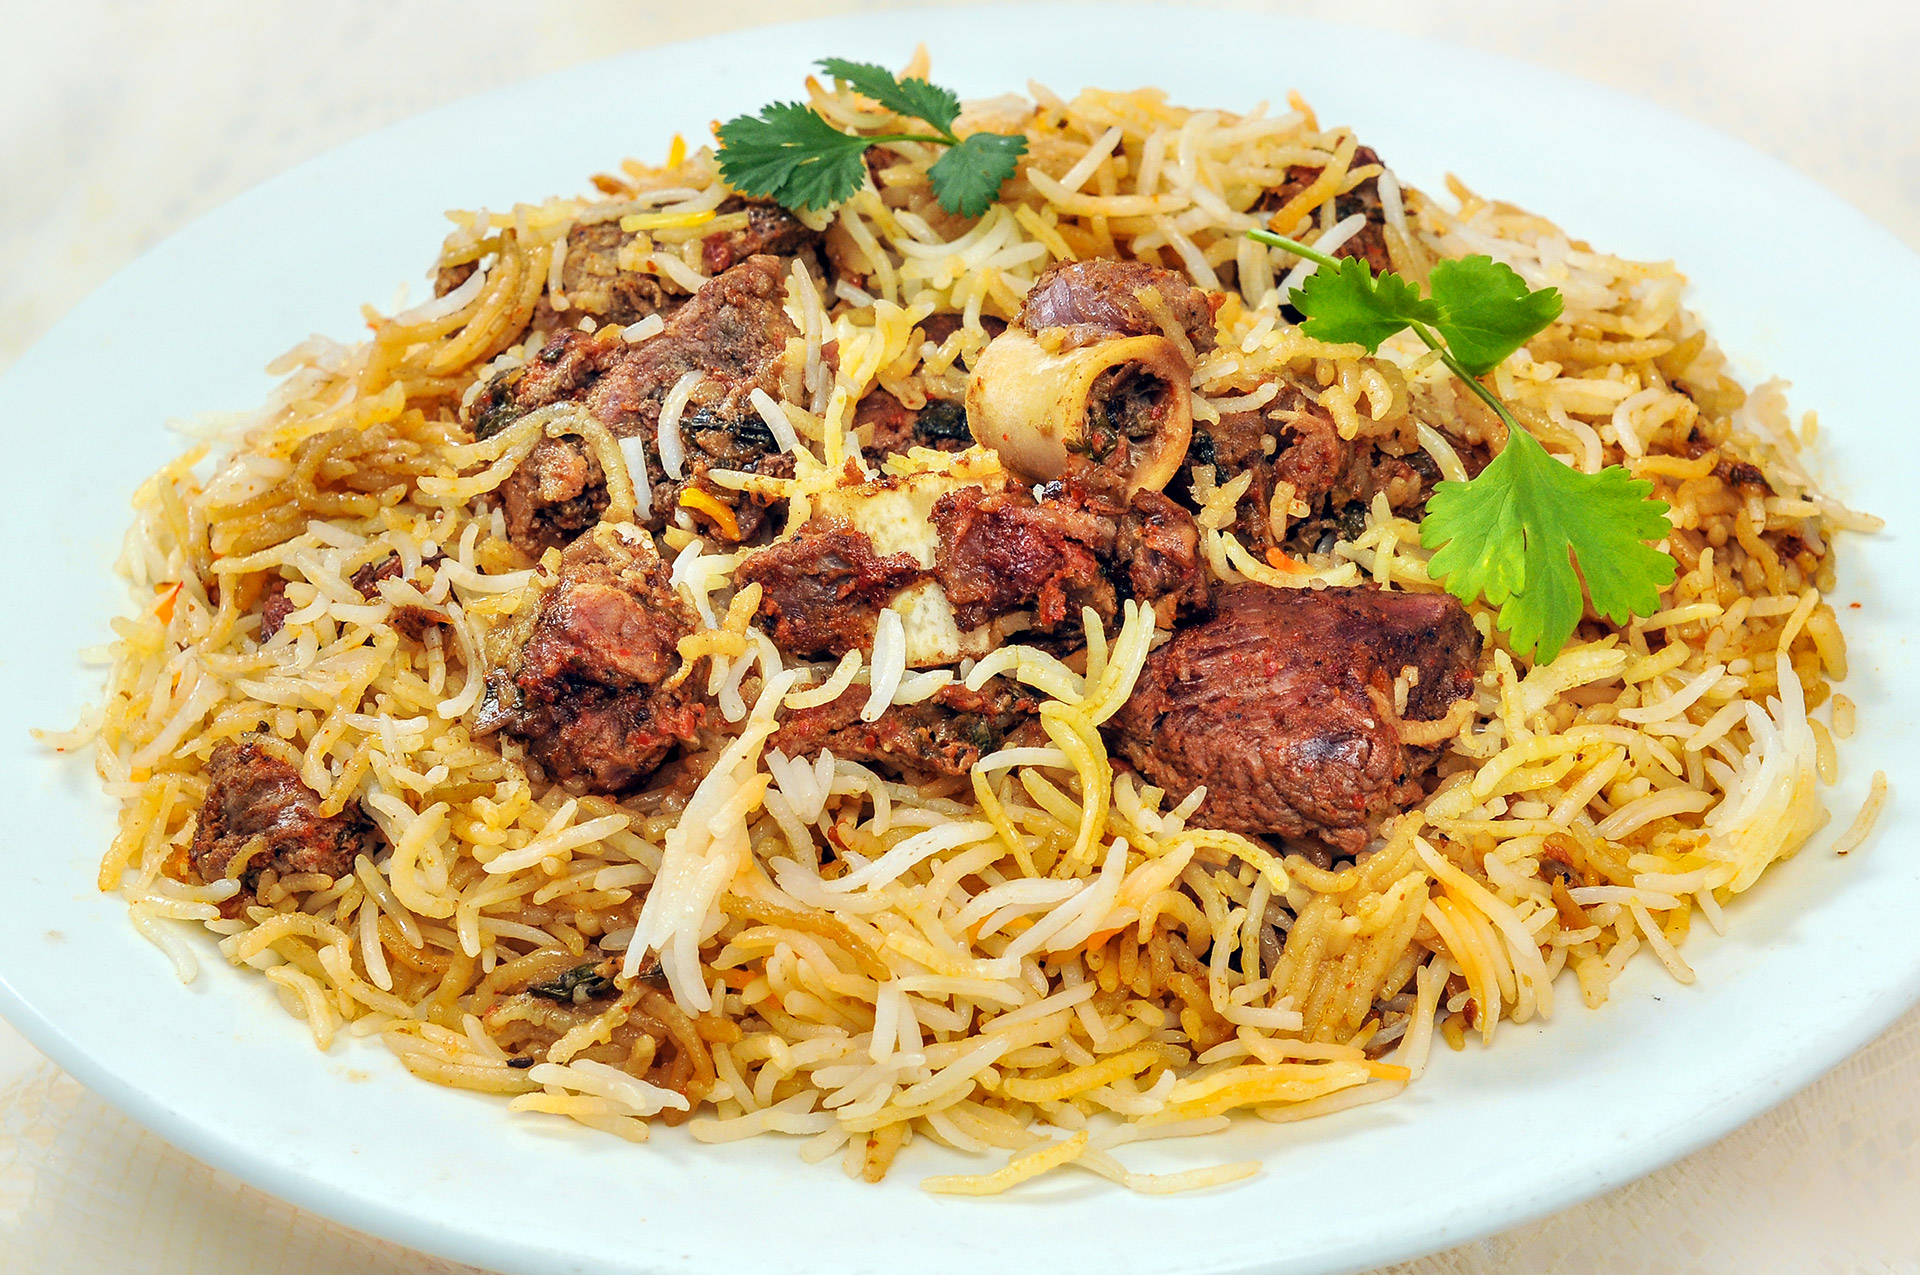 lucknowi-mutton-biryani-recipe